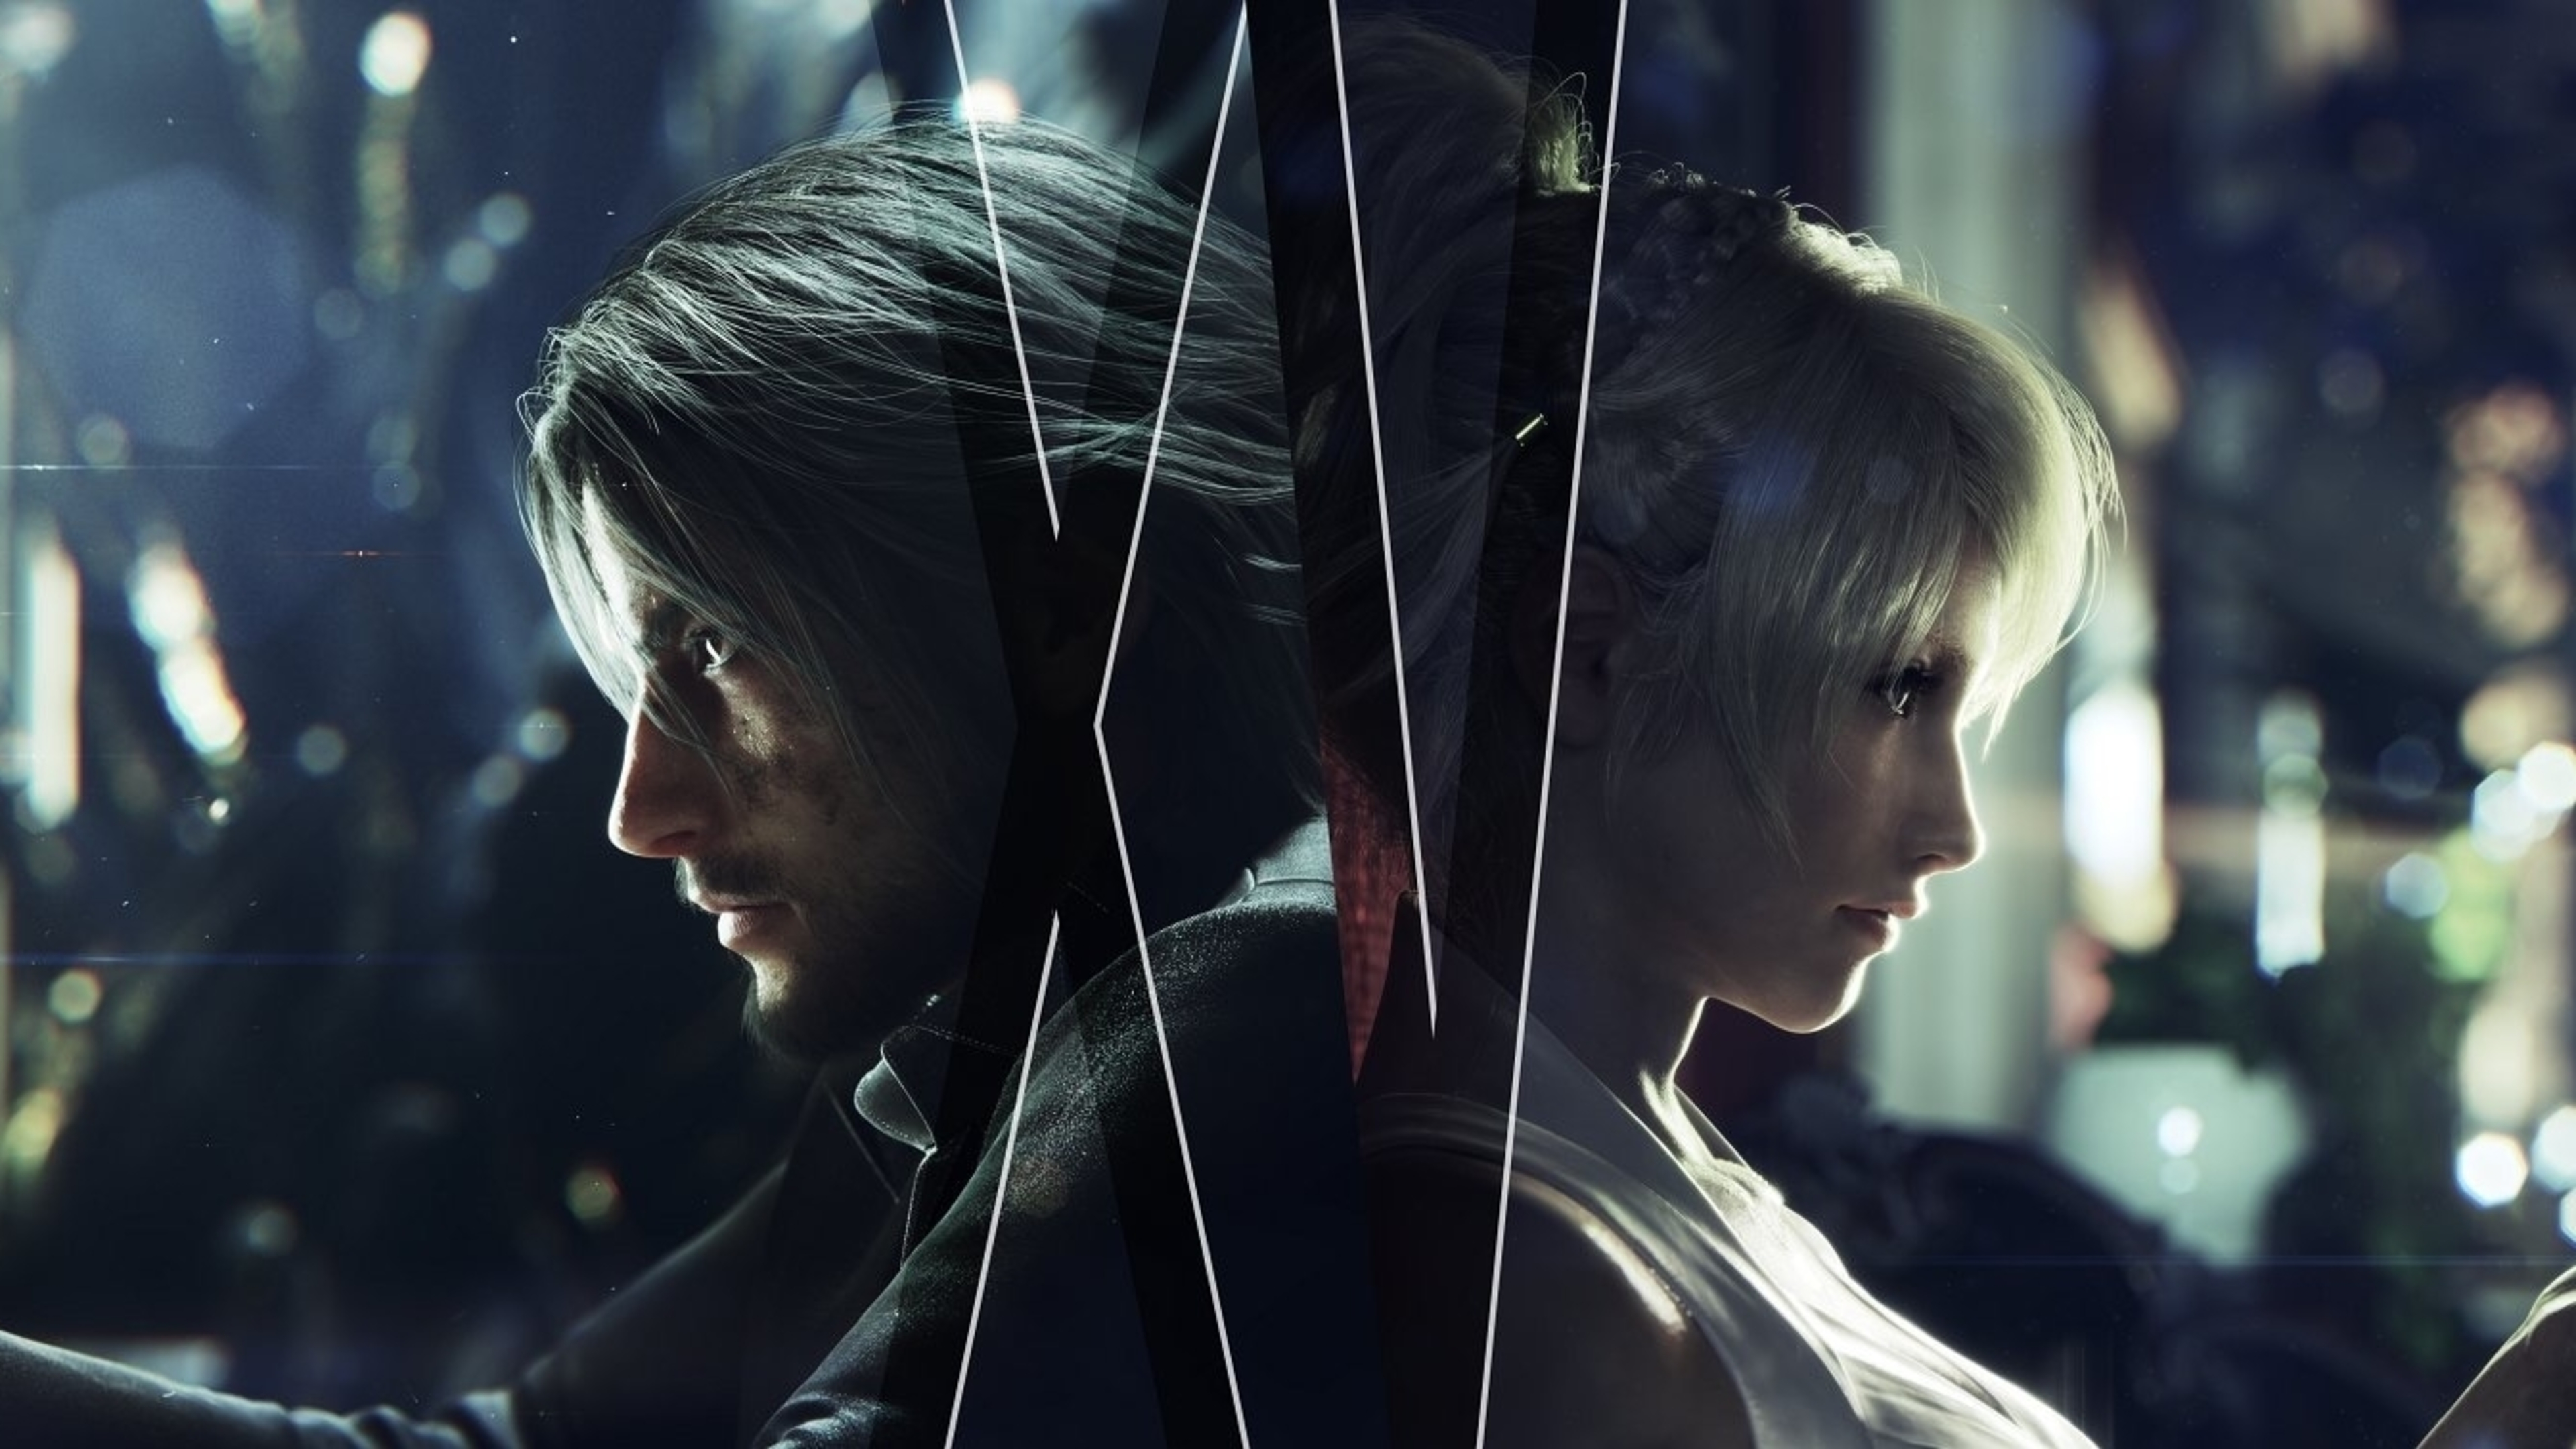 Final Fantasy Xv Wallpapers The Best 79 Images In 2018: FF XV Noctis & Luna